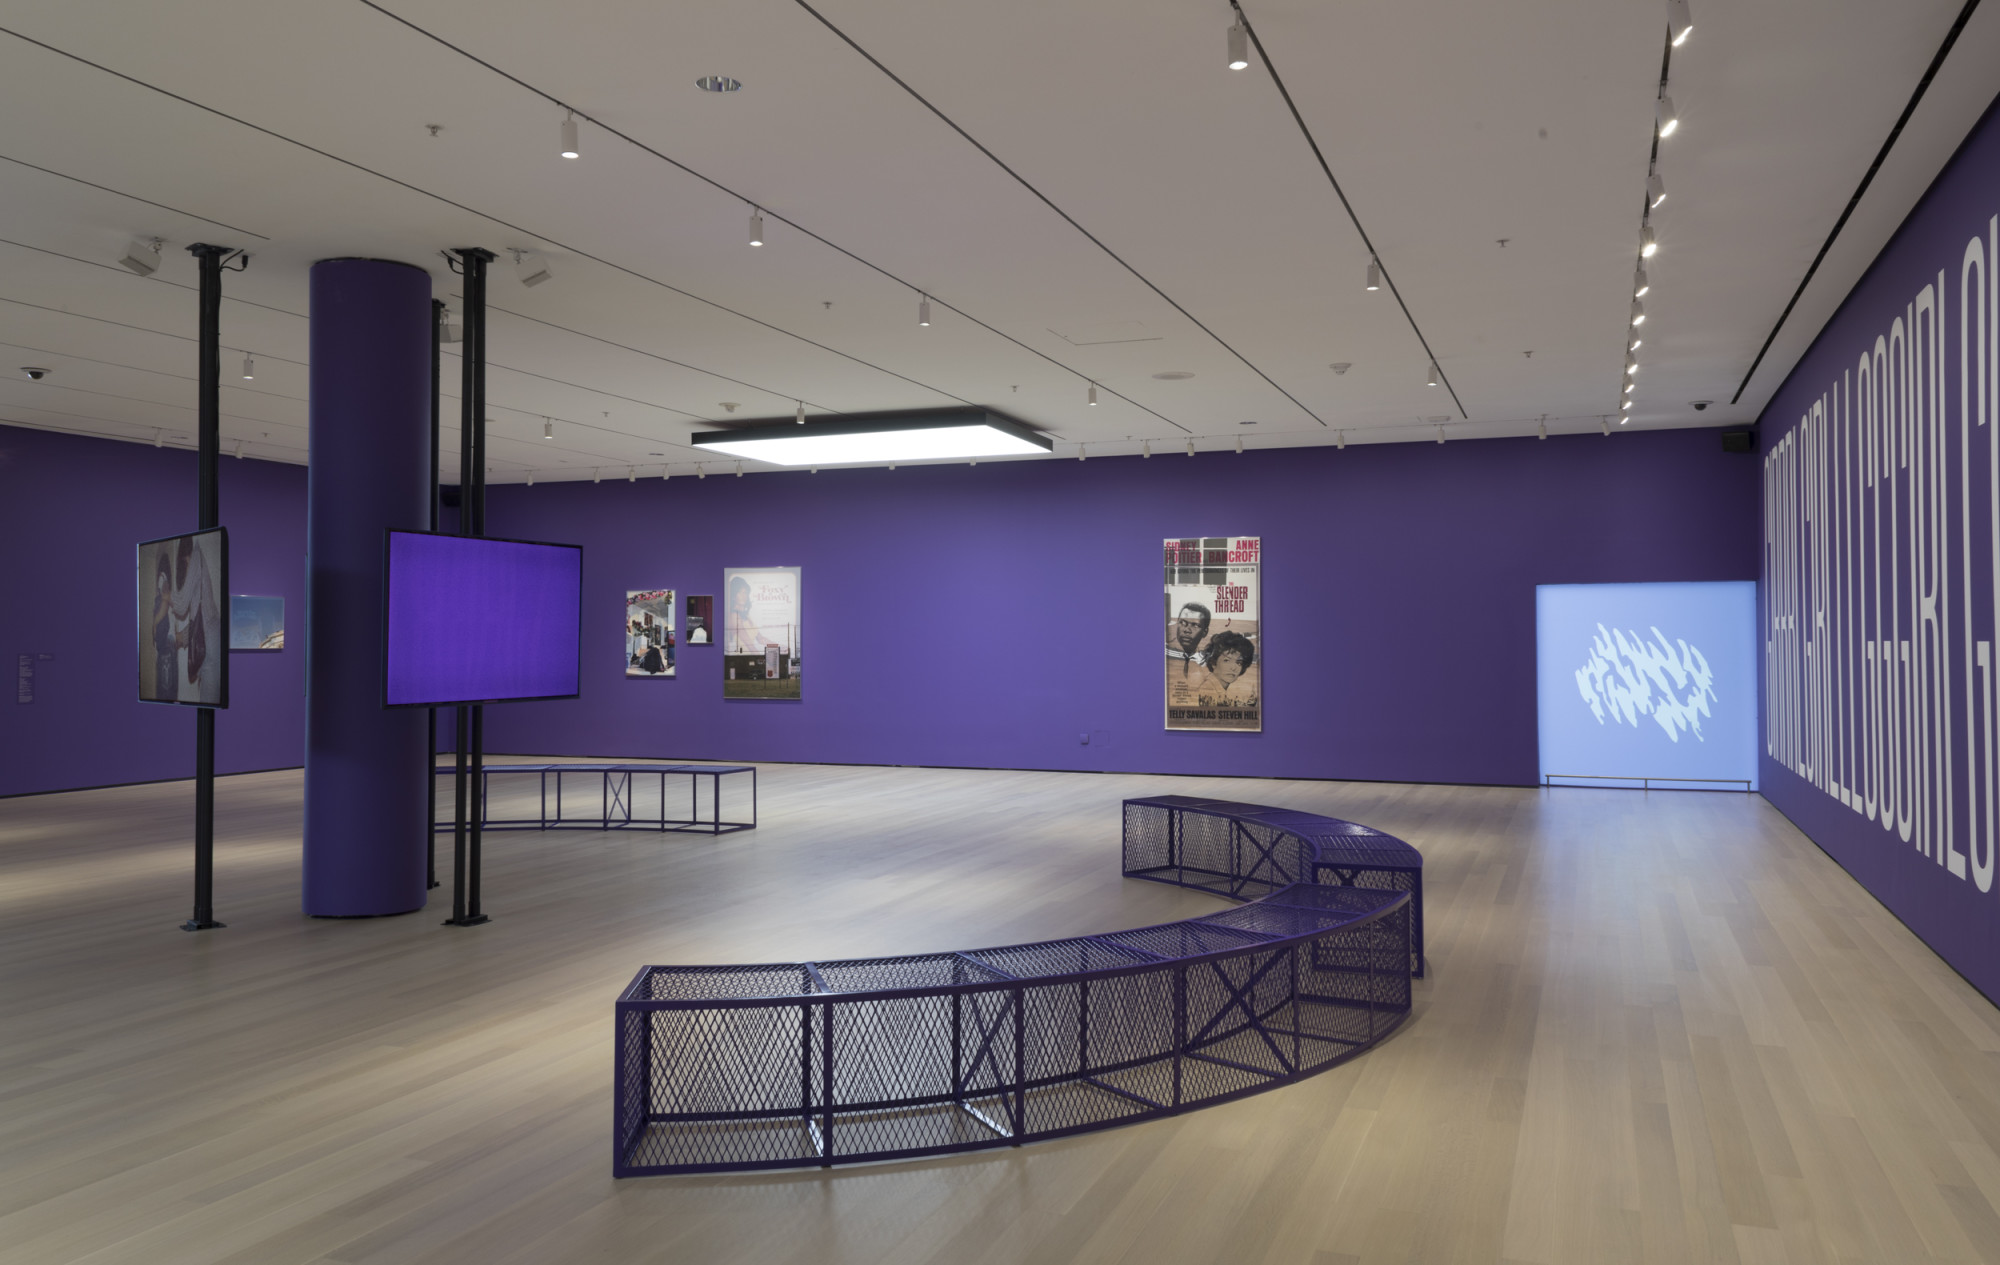 <p>Installation view,&#160;Projects 106,&#160;The Museum of Modern Art, New York,&#160;27 May &#8211; 16 July 2017</p><div class=&#34;location&#34;>&#160;</div>